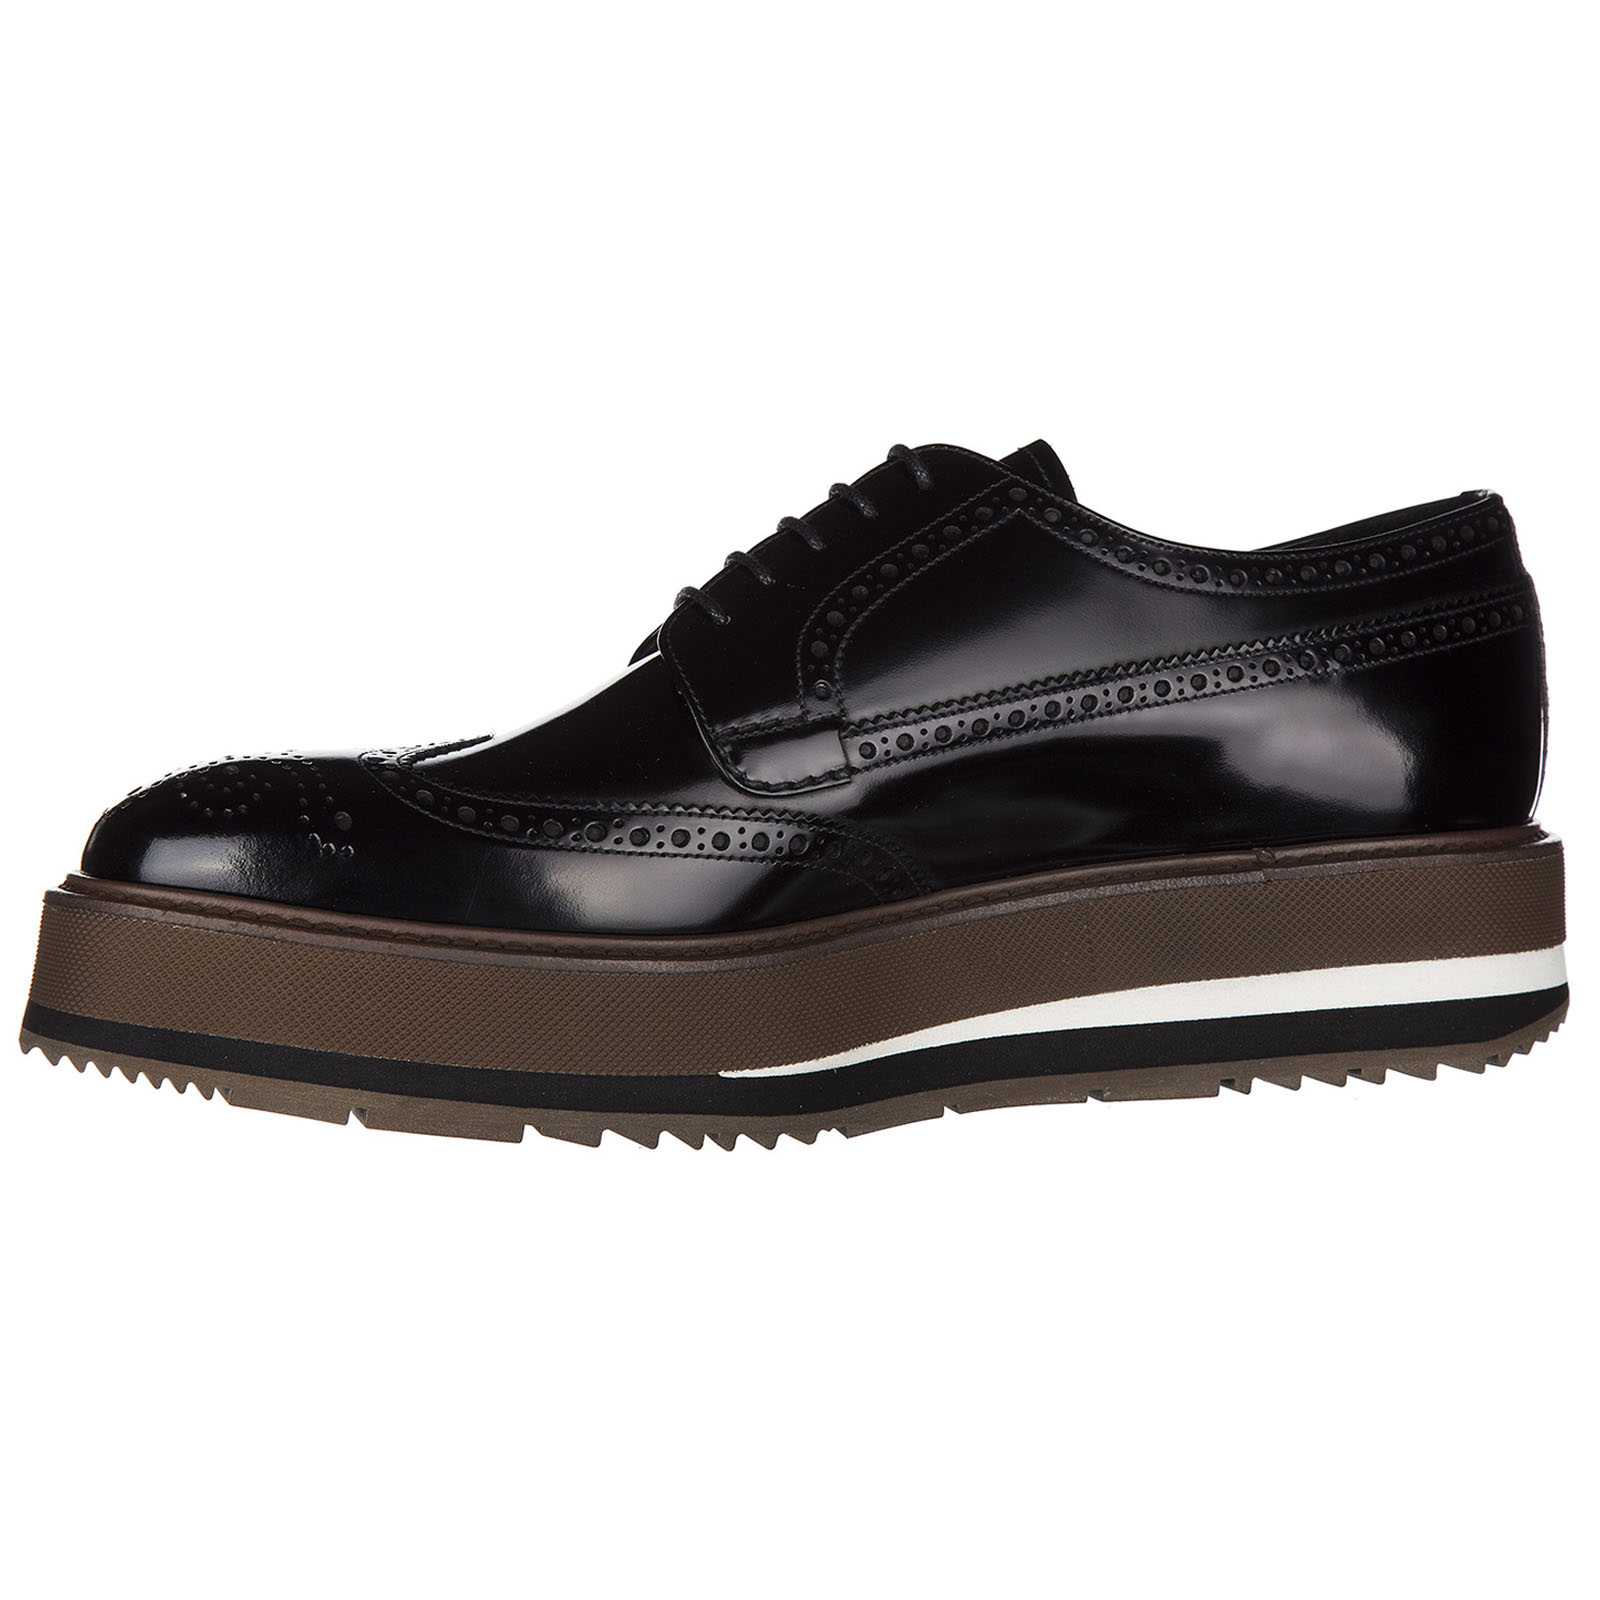 Men's classic leather lace up laced formal shoes spazzolato